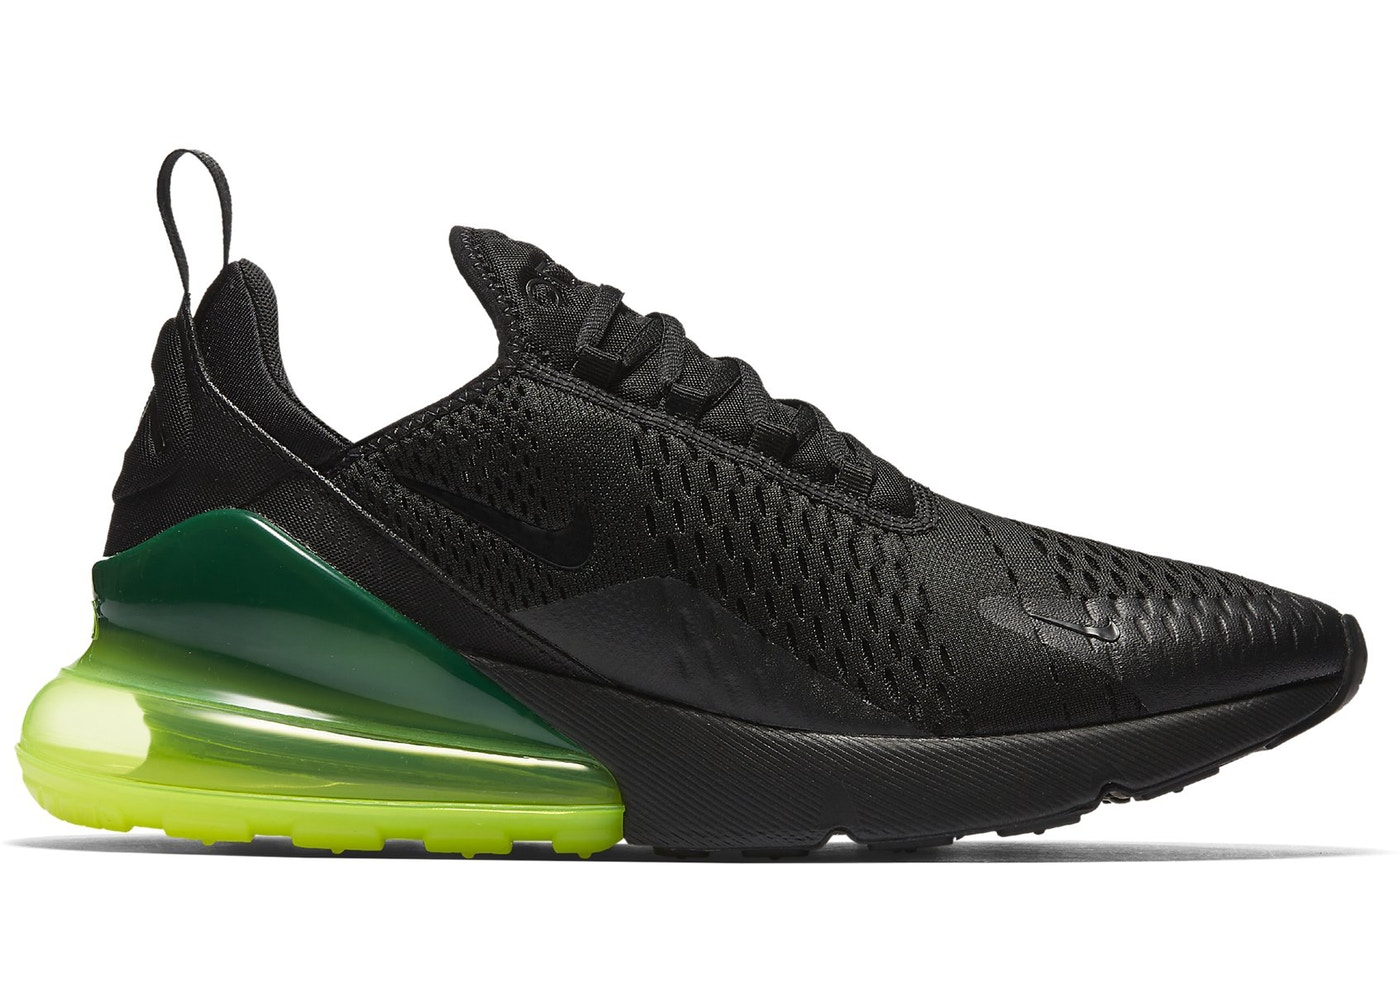 official photos 390e4 5cb40 Air Max 270 Black Volt